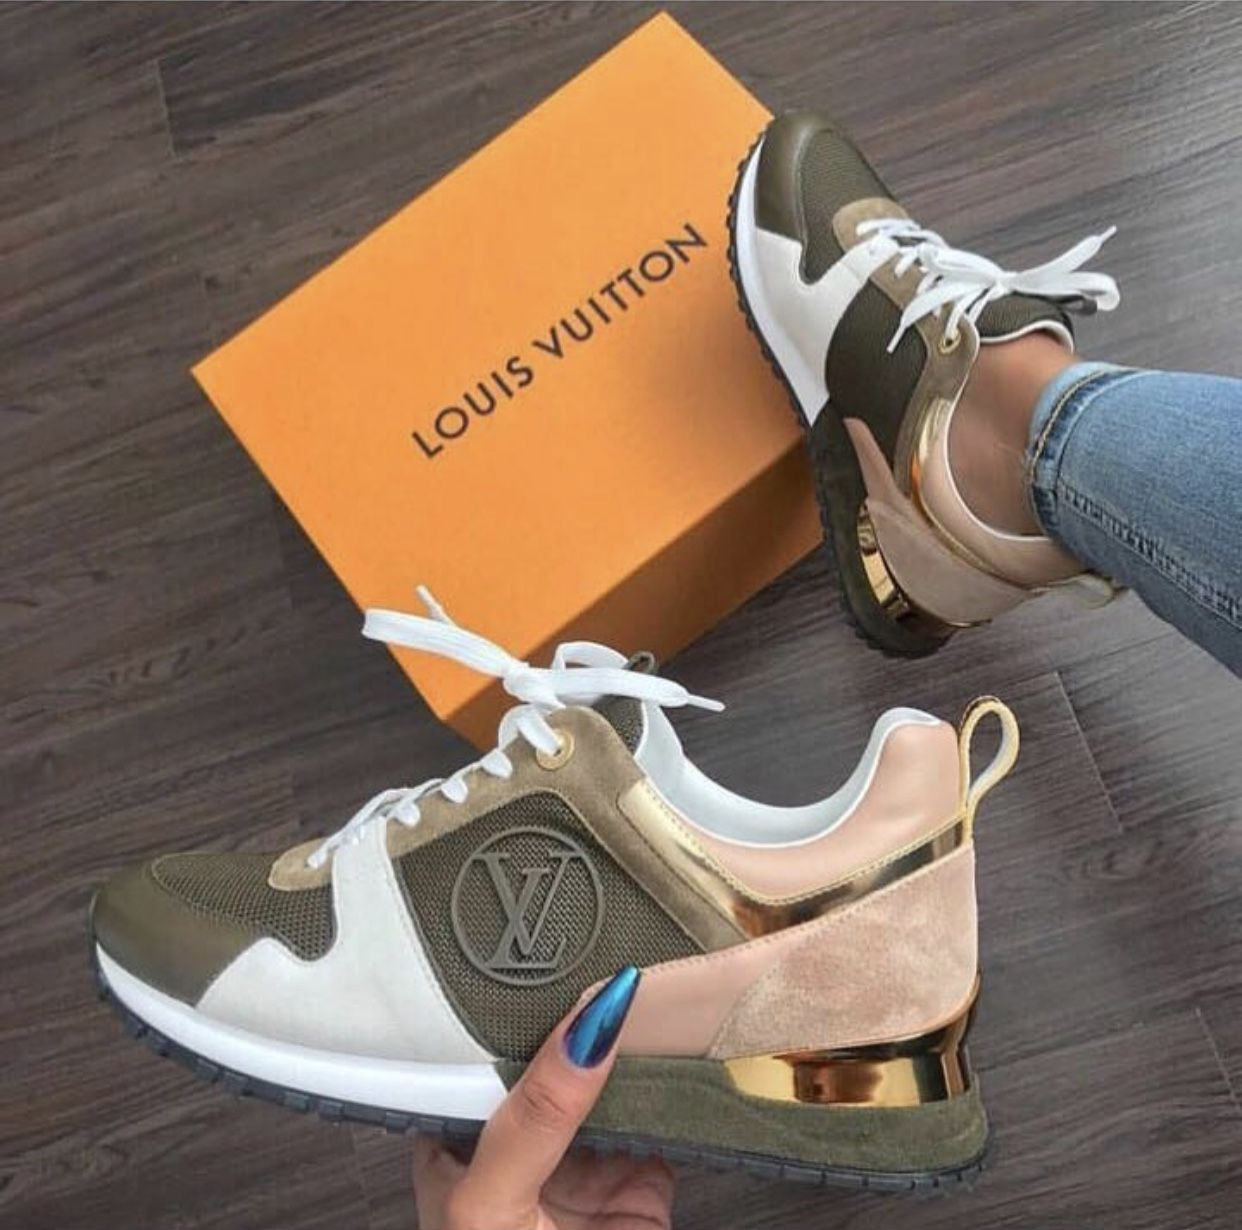 shoes  tenis  lv  louisvuitton   Fashion   Shoes, Sneakers, Shoes ... ebdeeb7ada7